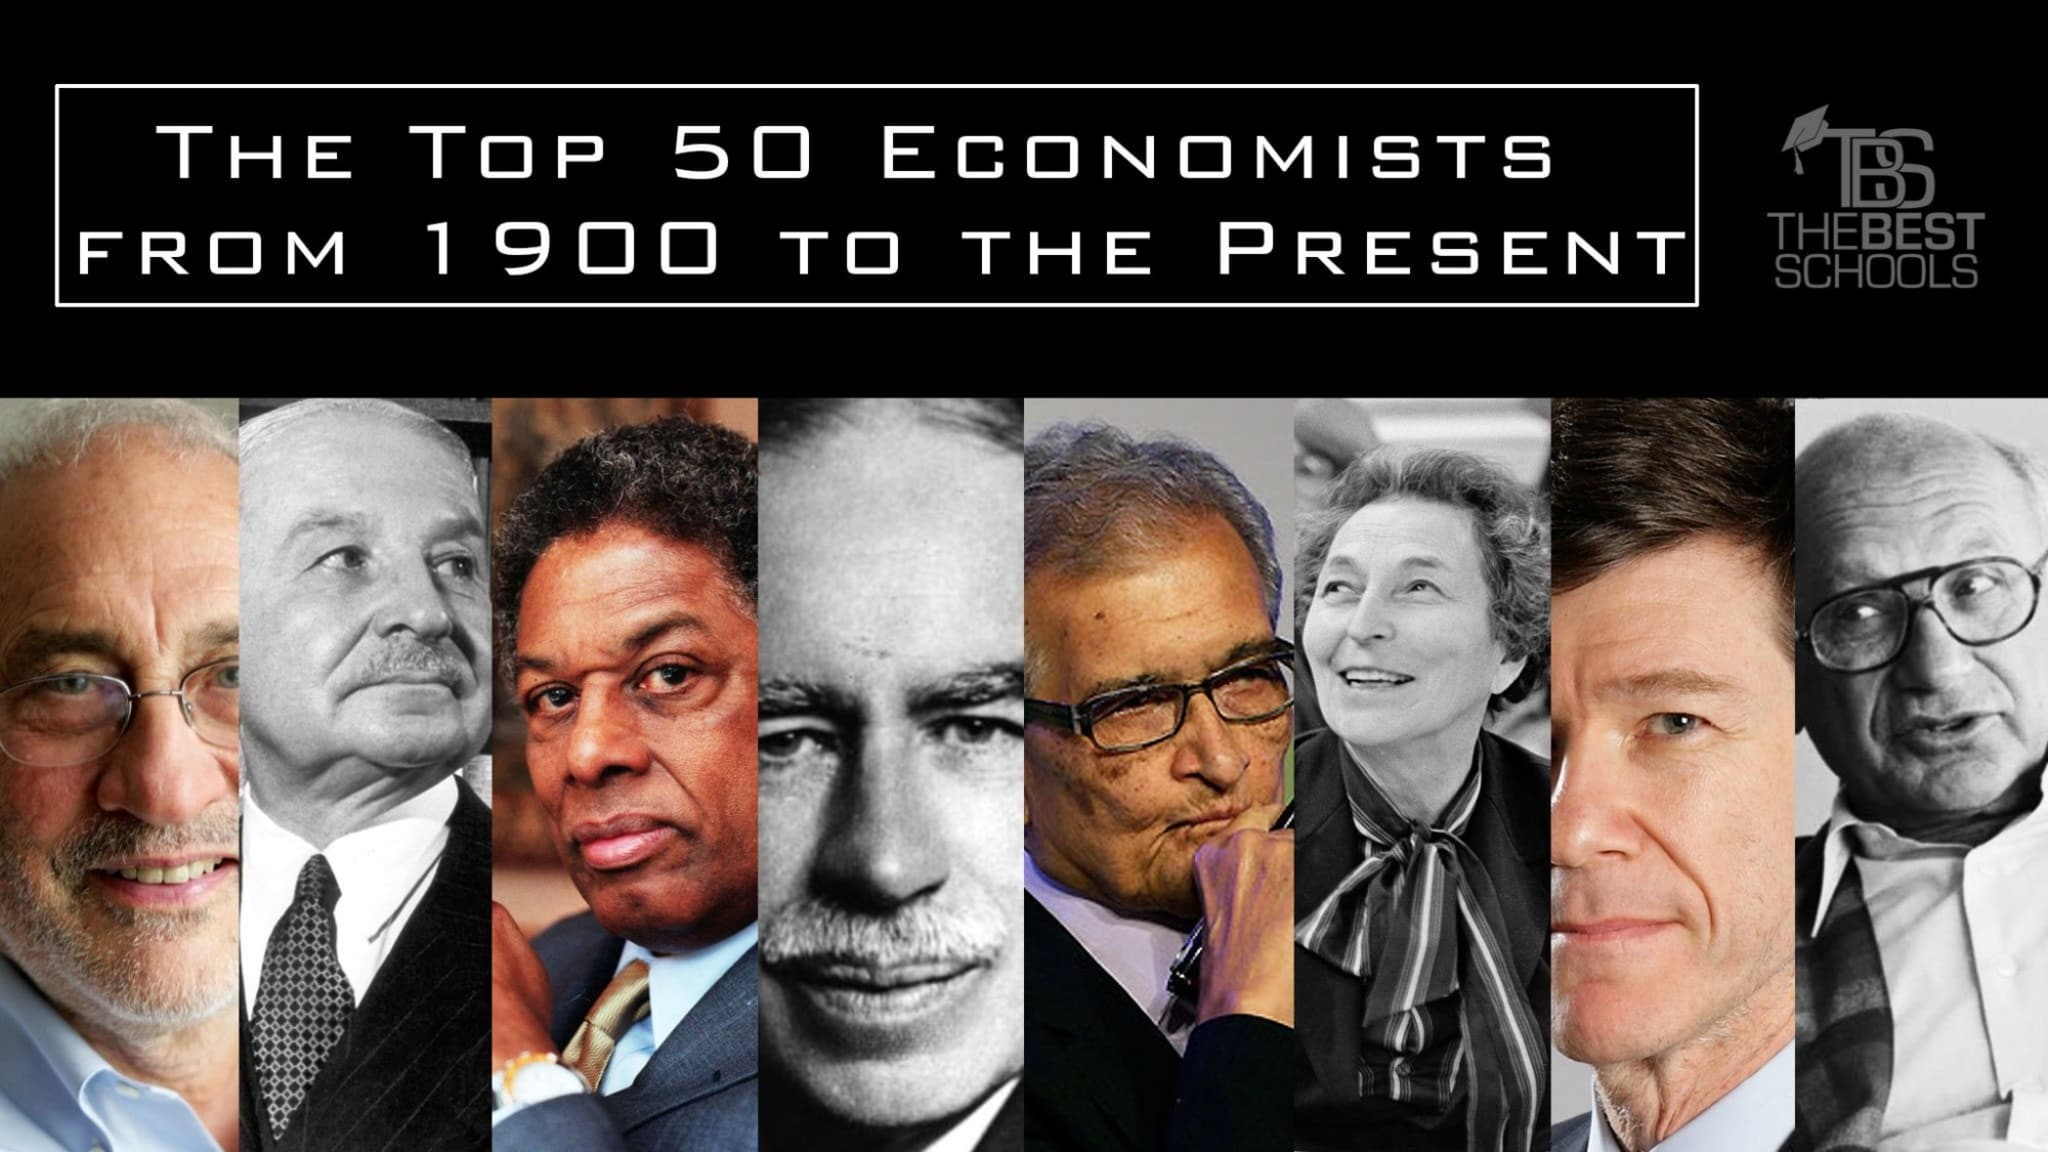 Free Market For Education Economists >> The Top 50 Economists From 1900 To The Present